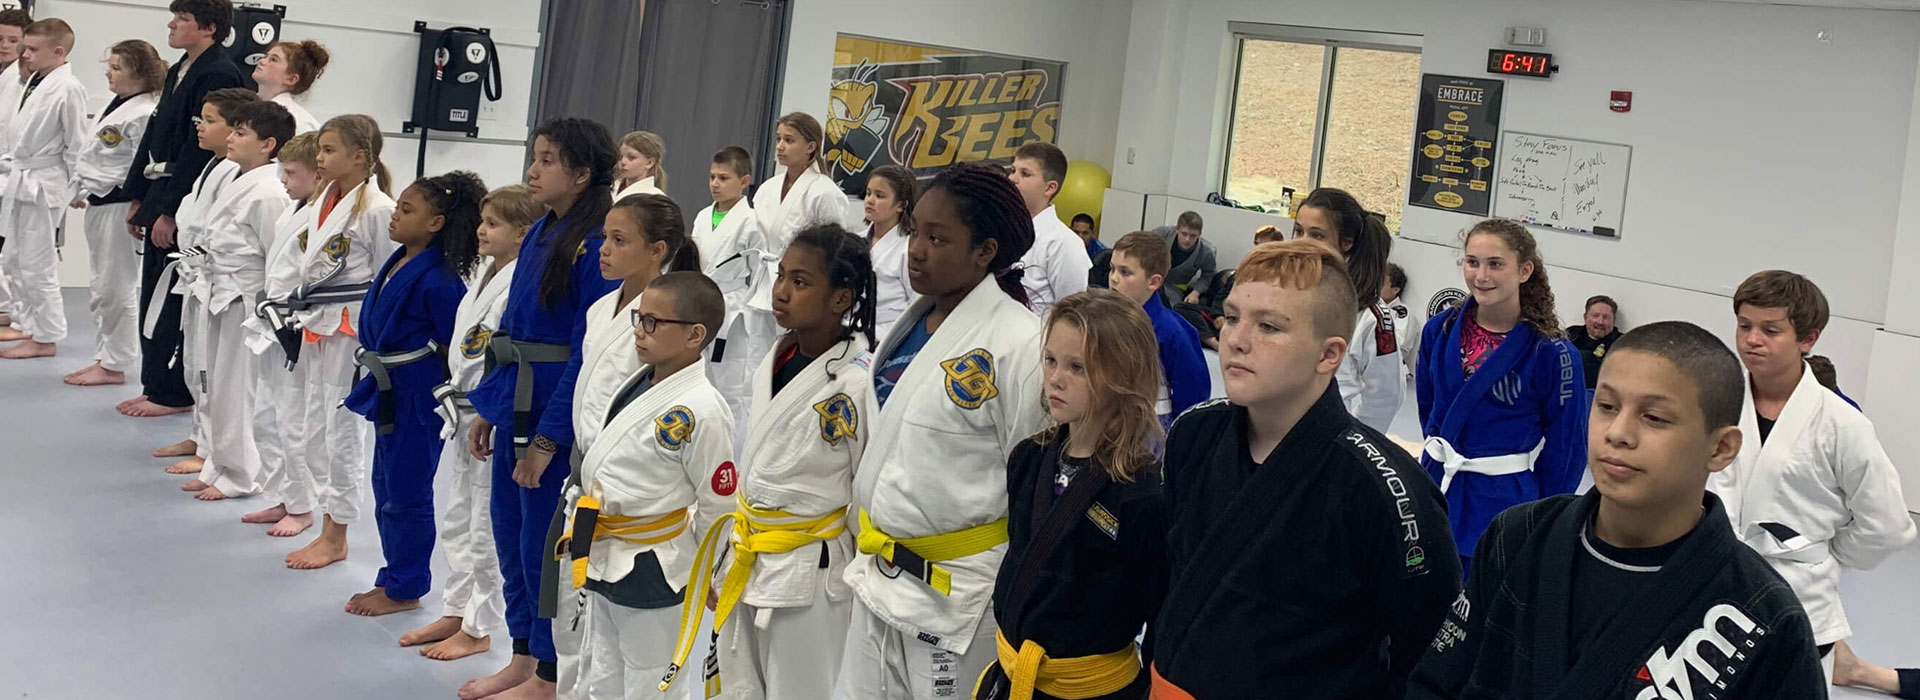 Martial Arts Gym in Wake Forest NC, Martial Arts Gym near Raleigh NC